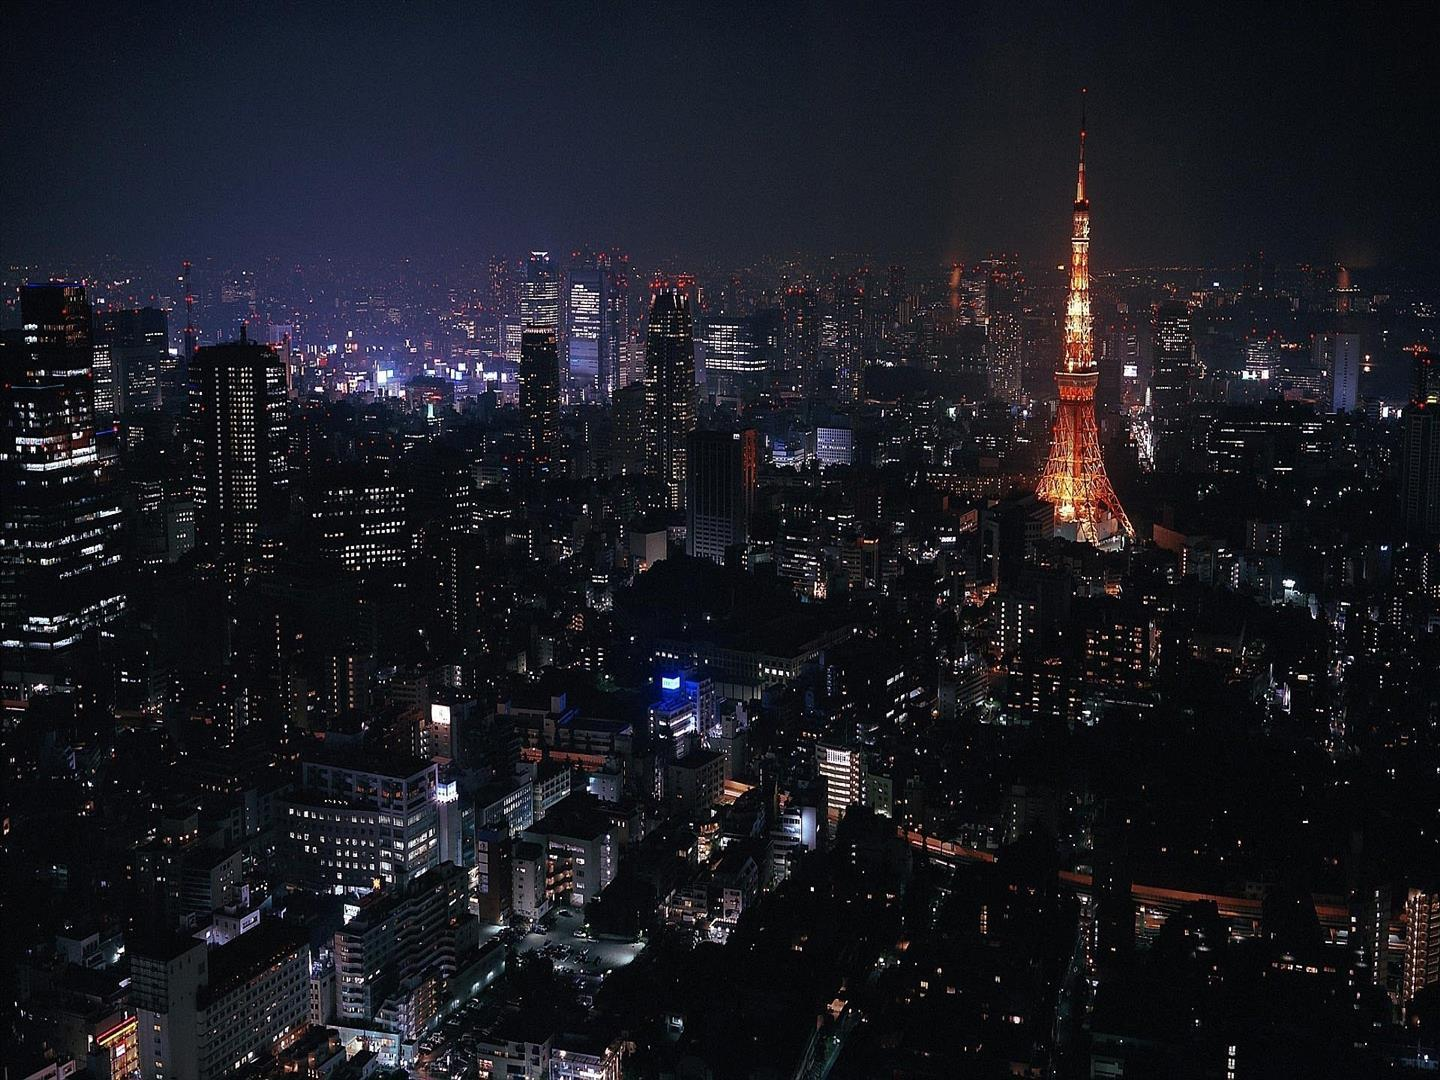 1440x1080 Night View of Tokyo City of Japan HD Wallpapers